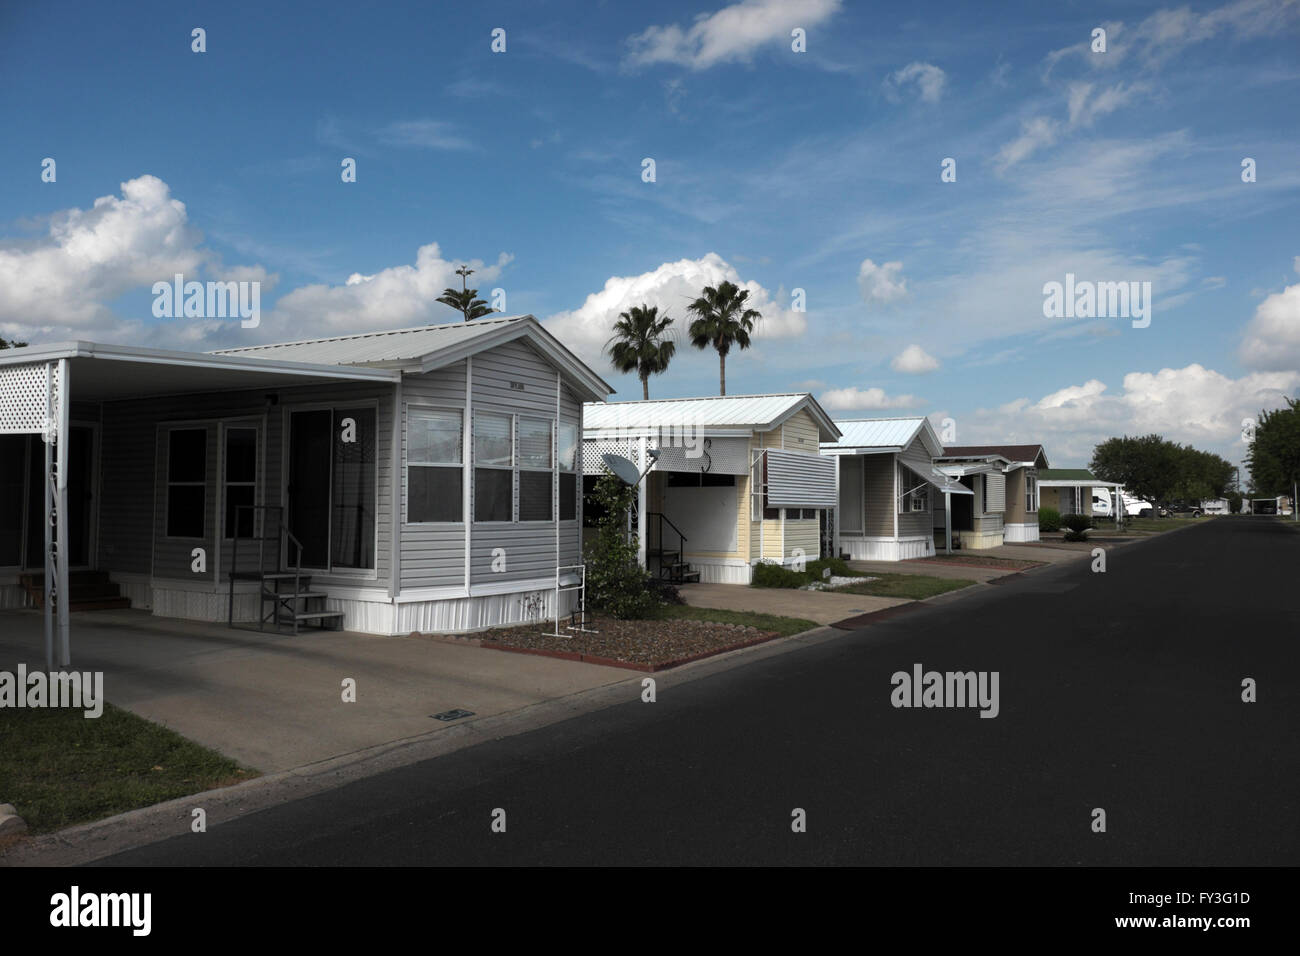 Travel trailers, fifth wheels, mobile homes and park models sit serenely in a trailer park (RV Resort, Mobile home - Stock Image